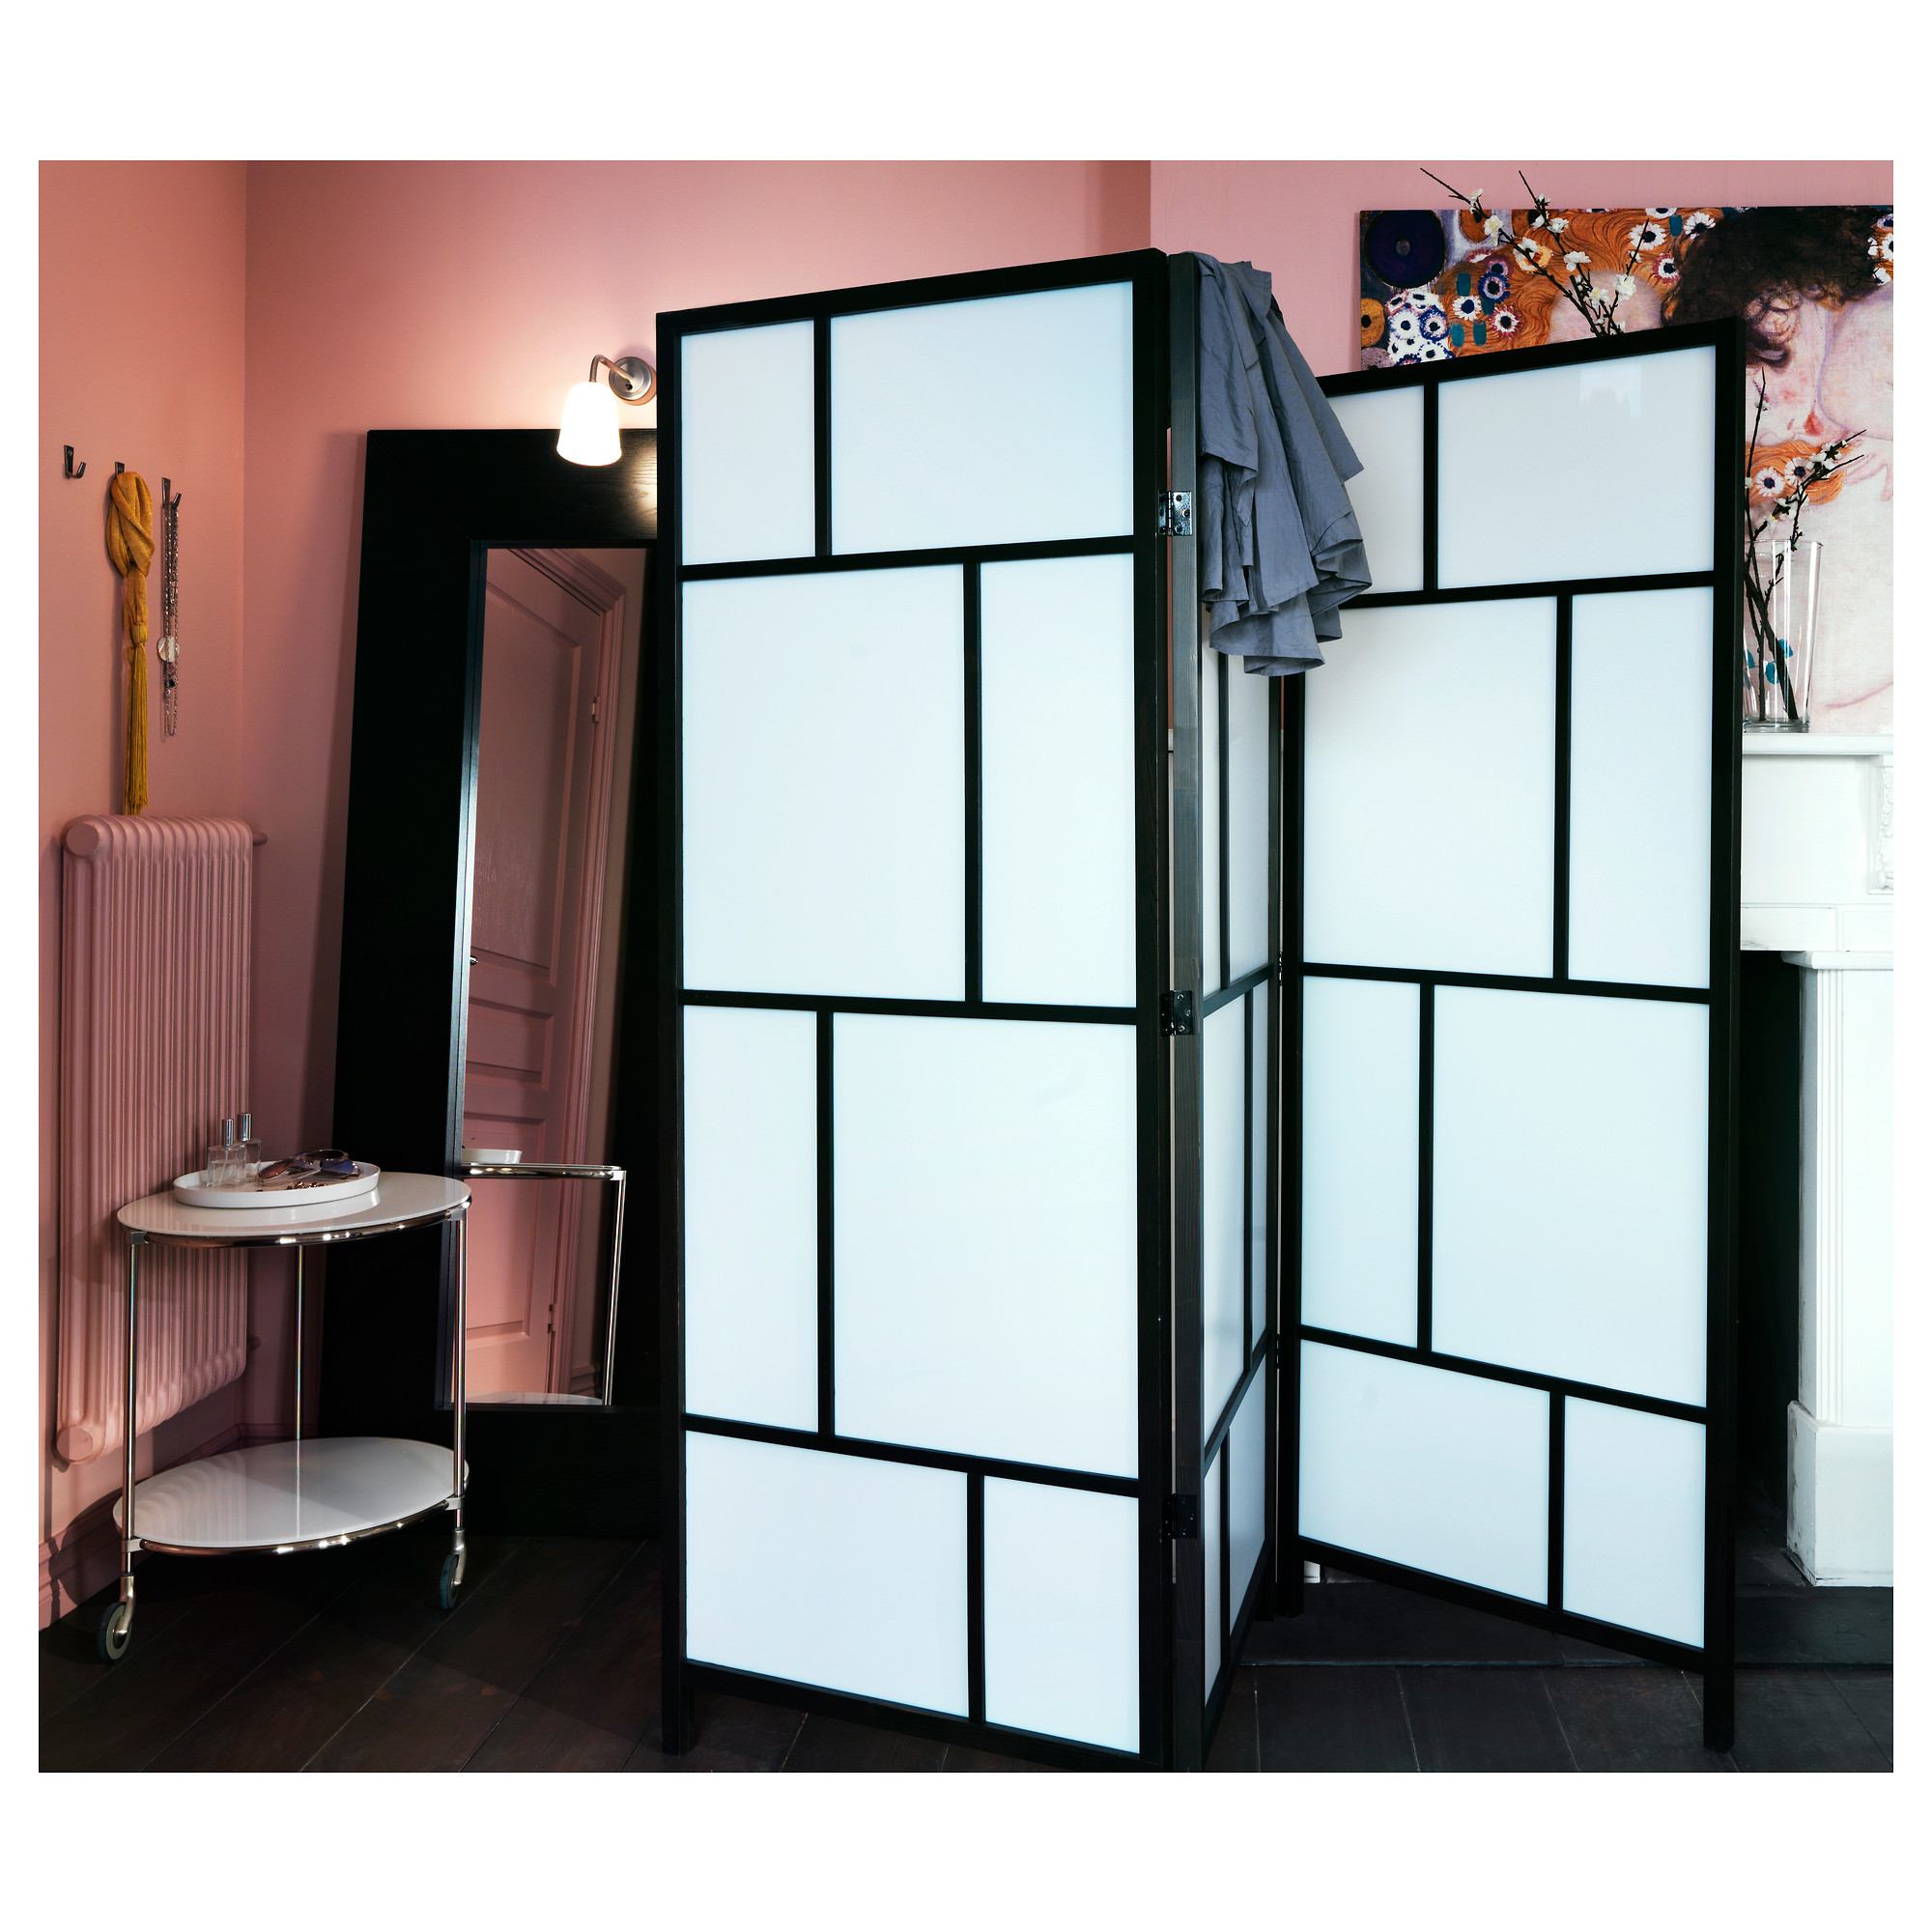 cool wall partitions ikea homesfeed. Black Bedroom Furniture Sets. Home Design Ideas